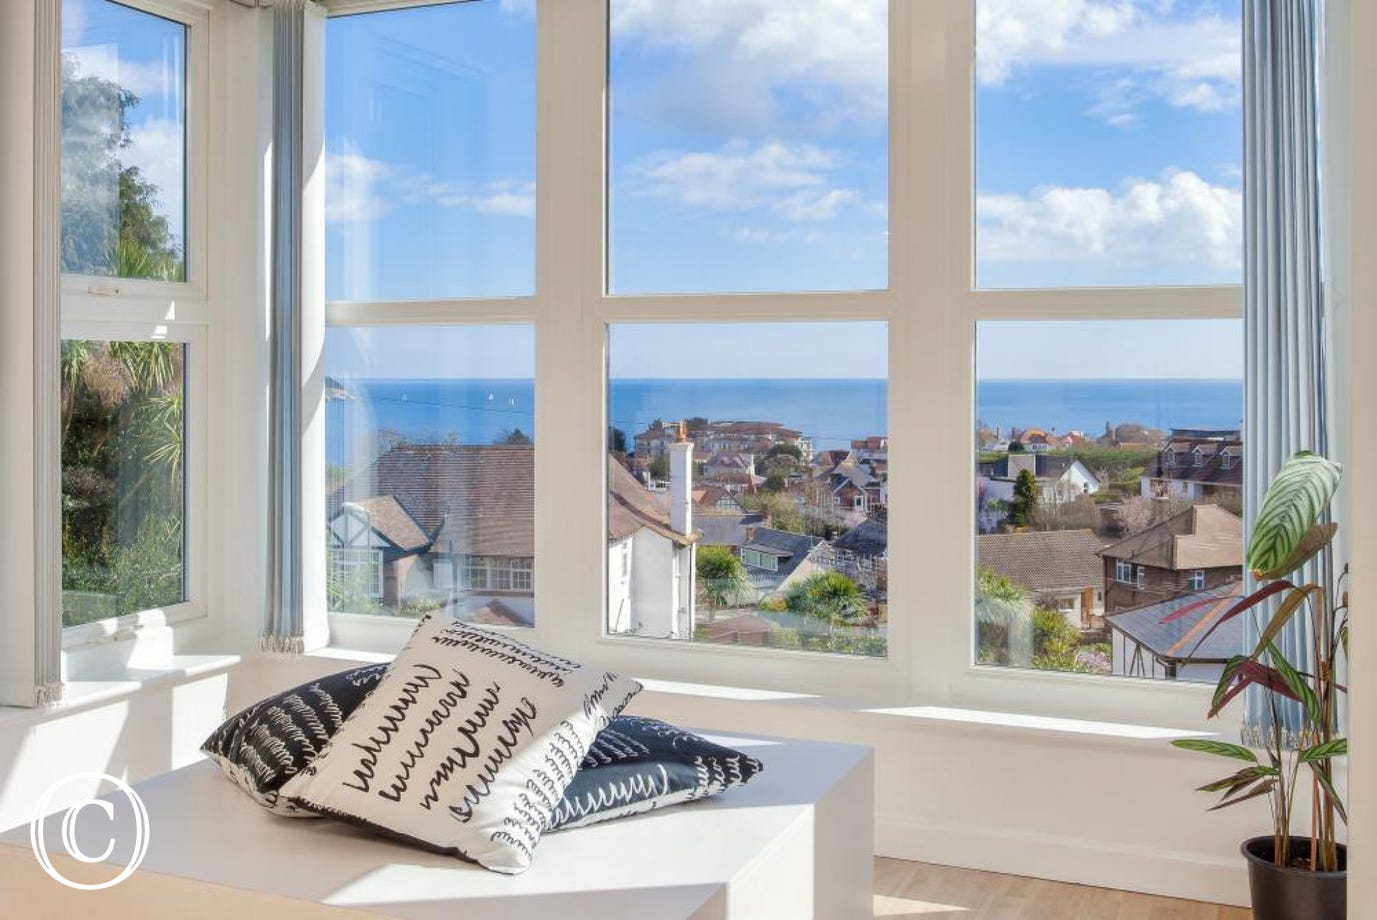 Enjoy Spectacular Sea Views over Torbay from this Central Torquay Self-Catering Apartment, Close to Torquay Town Centre, Cockington Village and Paignton